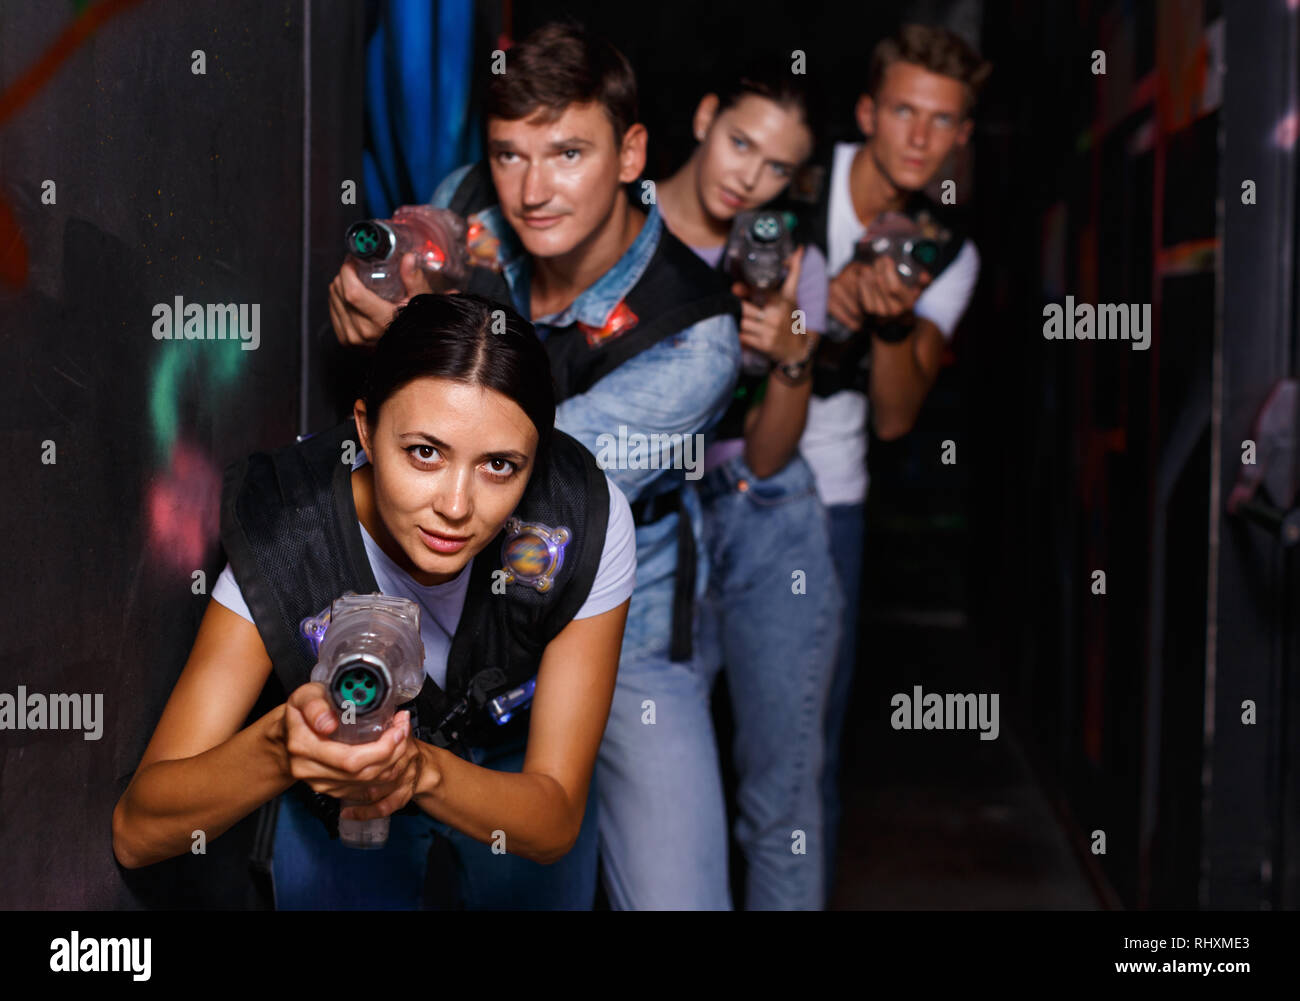 Portrait of happy cheerful glad young friends playing laser tag game